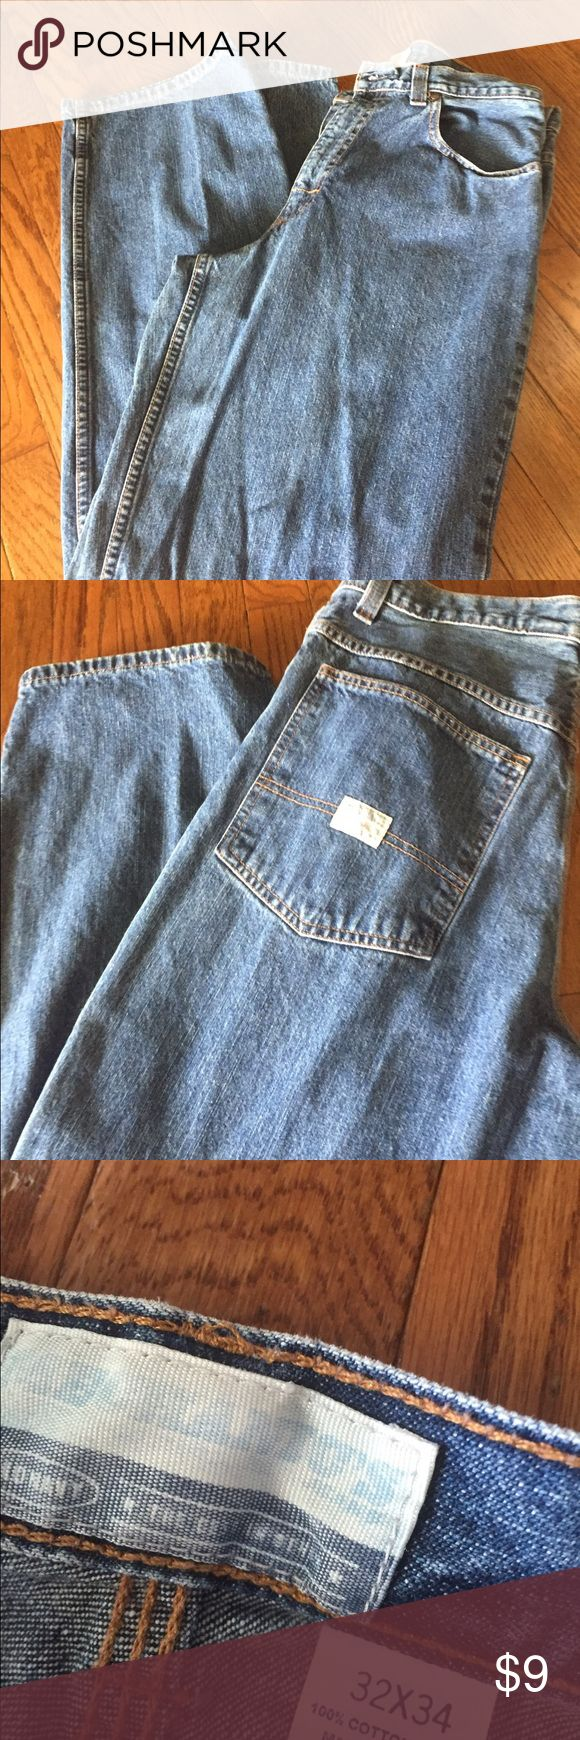 OLD NAVY JEANS Great comfy pair of my Old Navu jeans. No damage. Medium denim 32x 34 Old Navy Jeans Relaxed